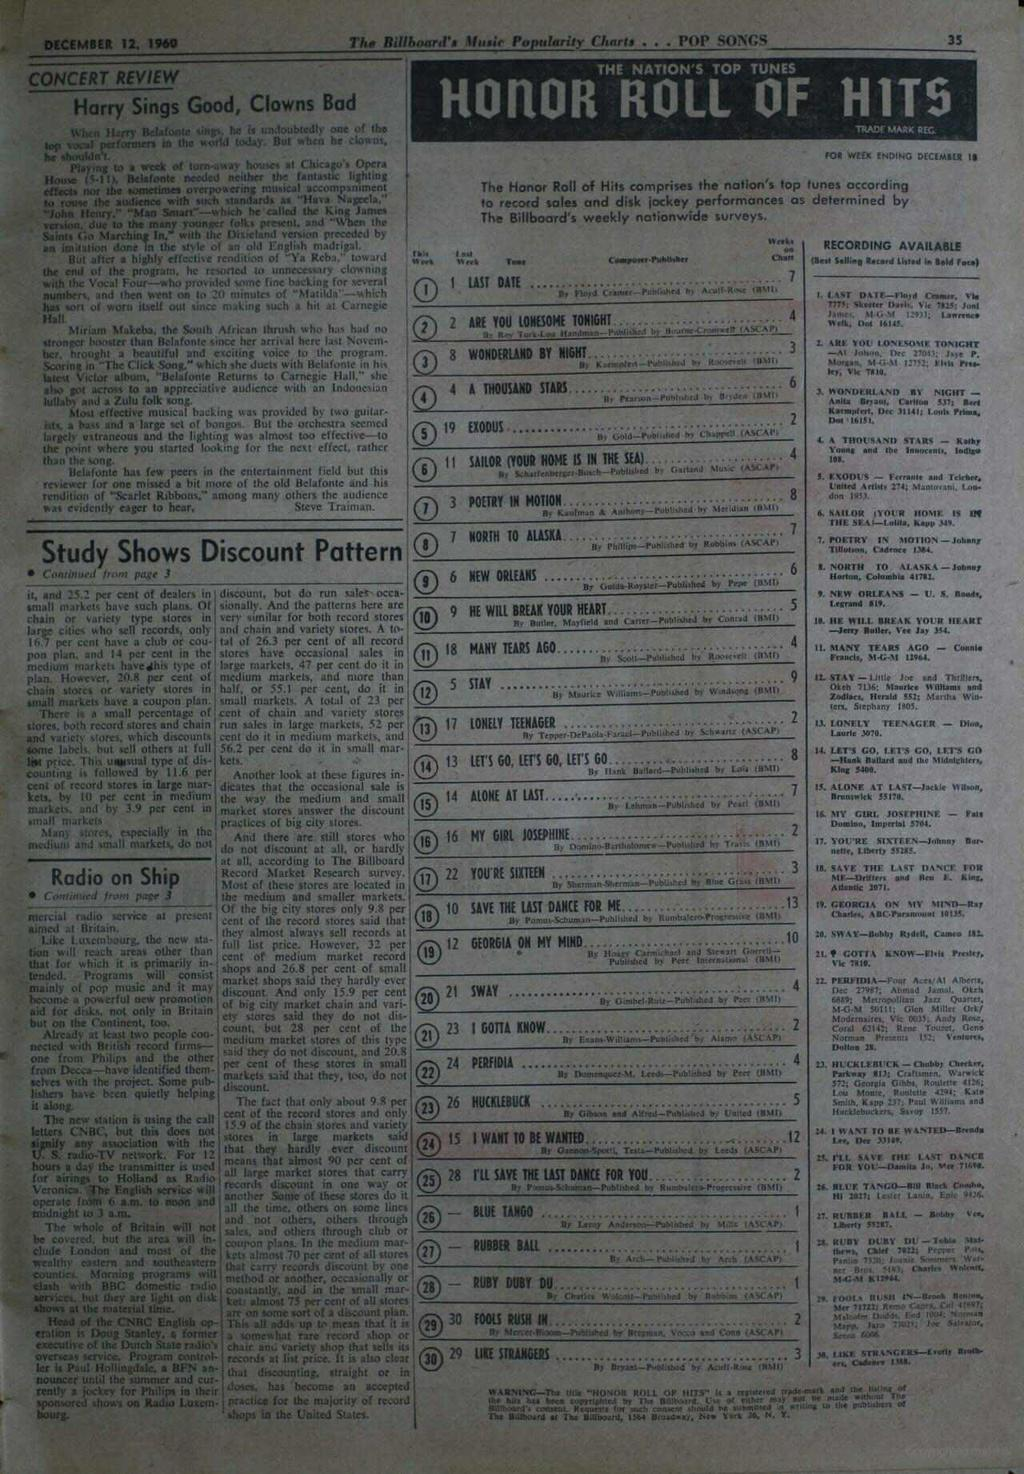 DECEMBER 12, 1960 The Billboard's Almair Popularity Charta.